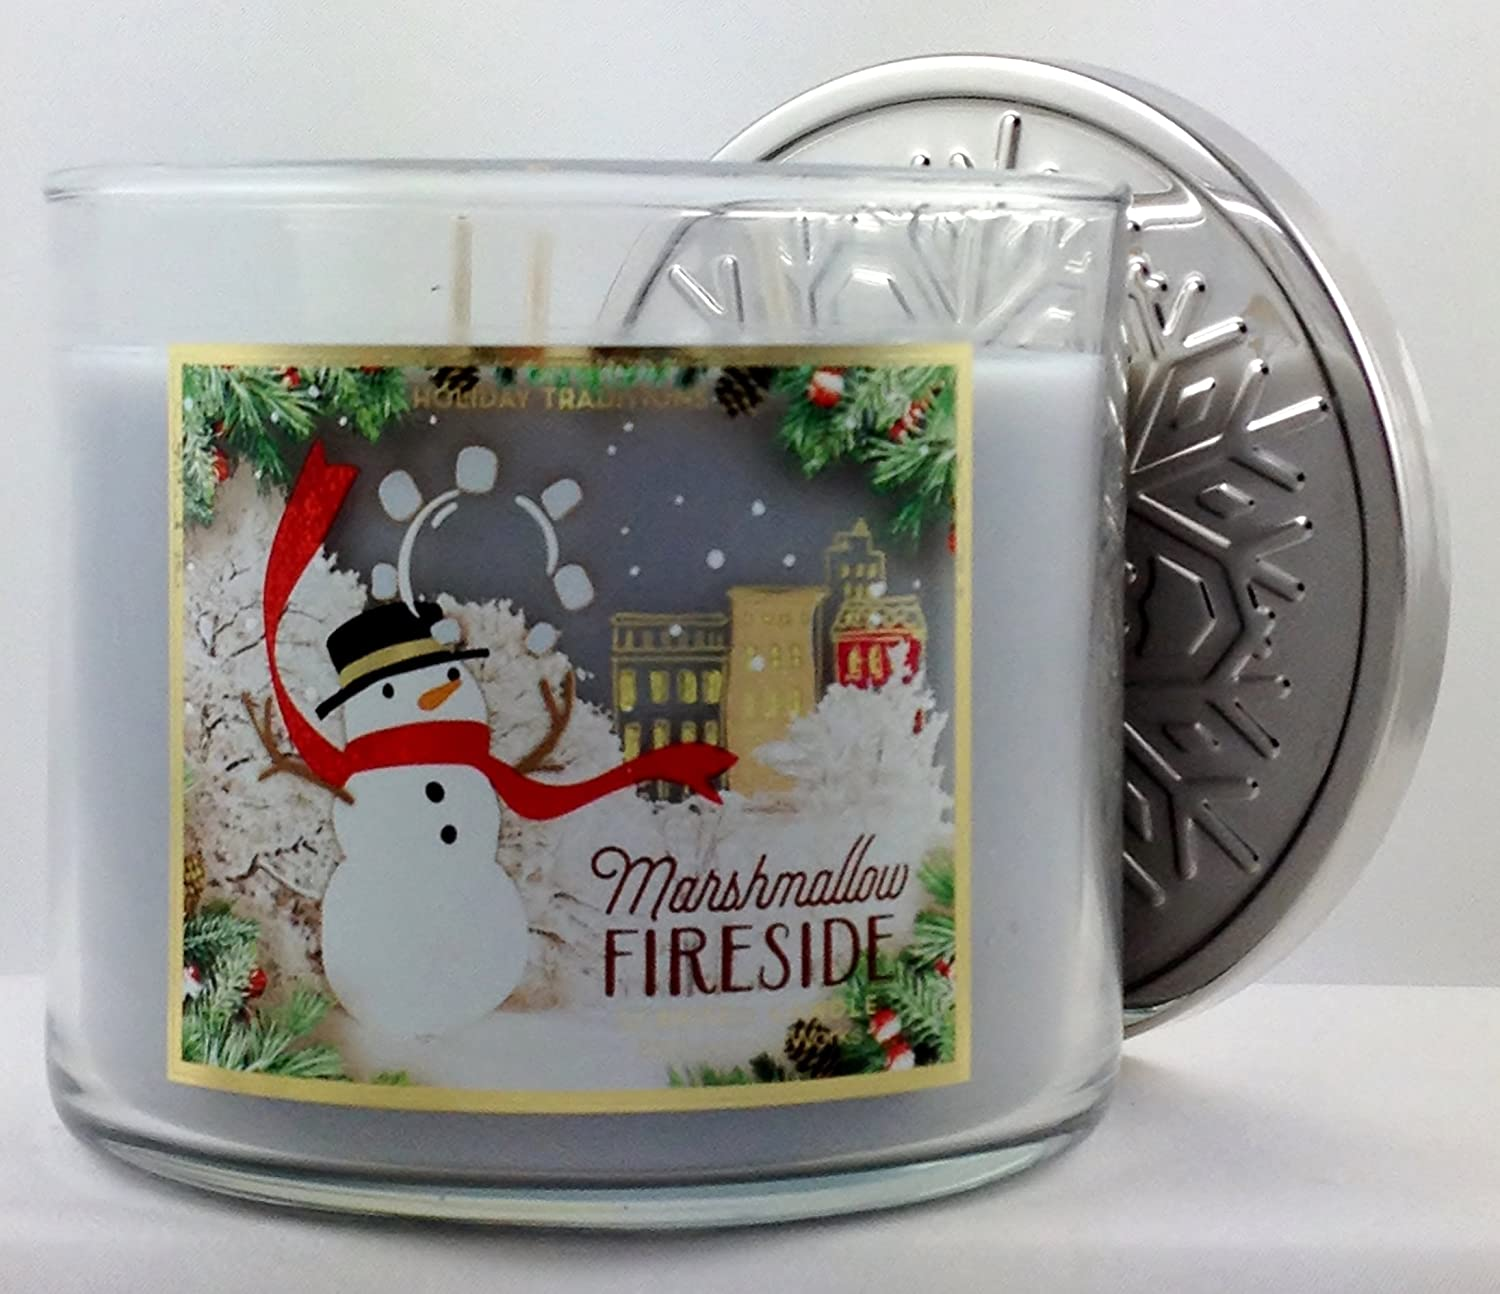 Bath /& Body Works Marshmallow Fireside Candle 3 Wick 14.5 Oz Holiday Traditions Limited Edition 2015